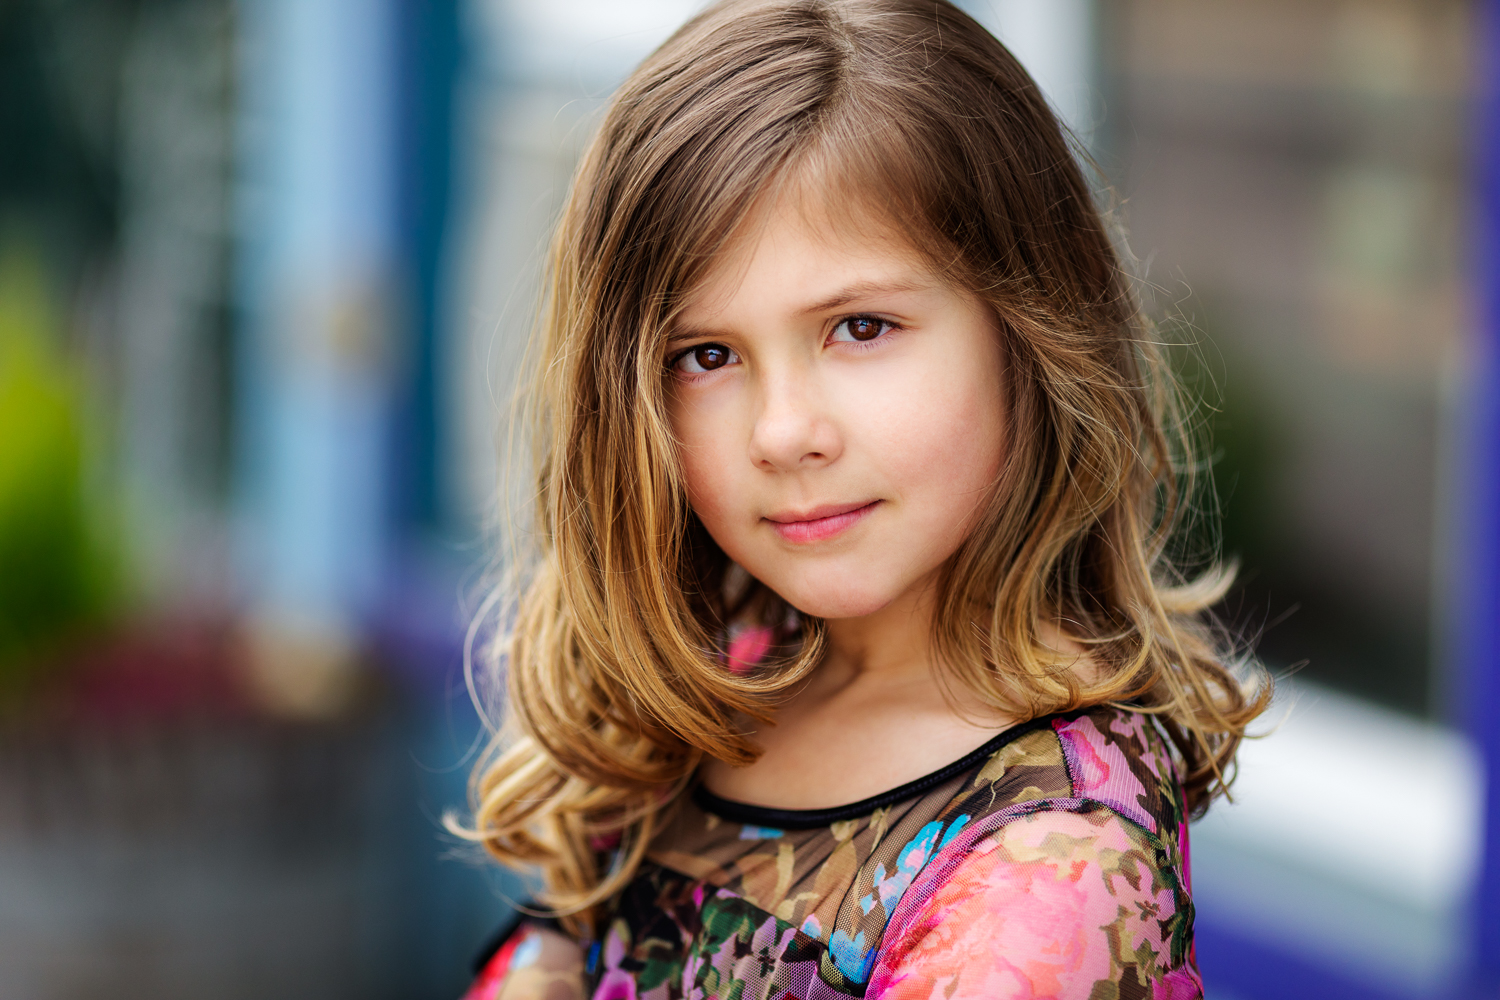 ariellanoellephotography-seattle-area-children-headshots-child-portraiture-actor-model-bellevue-kirkland-redmond-1-6.jpg